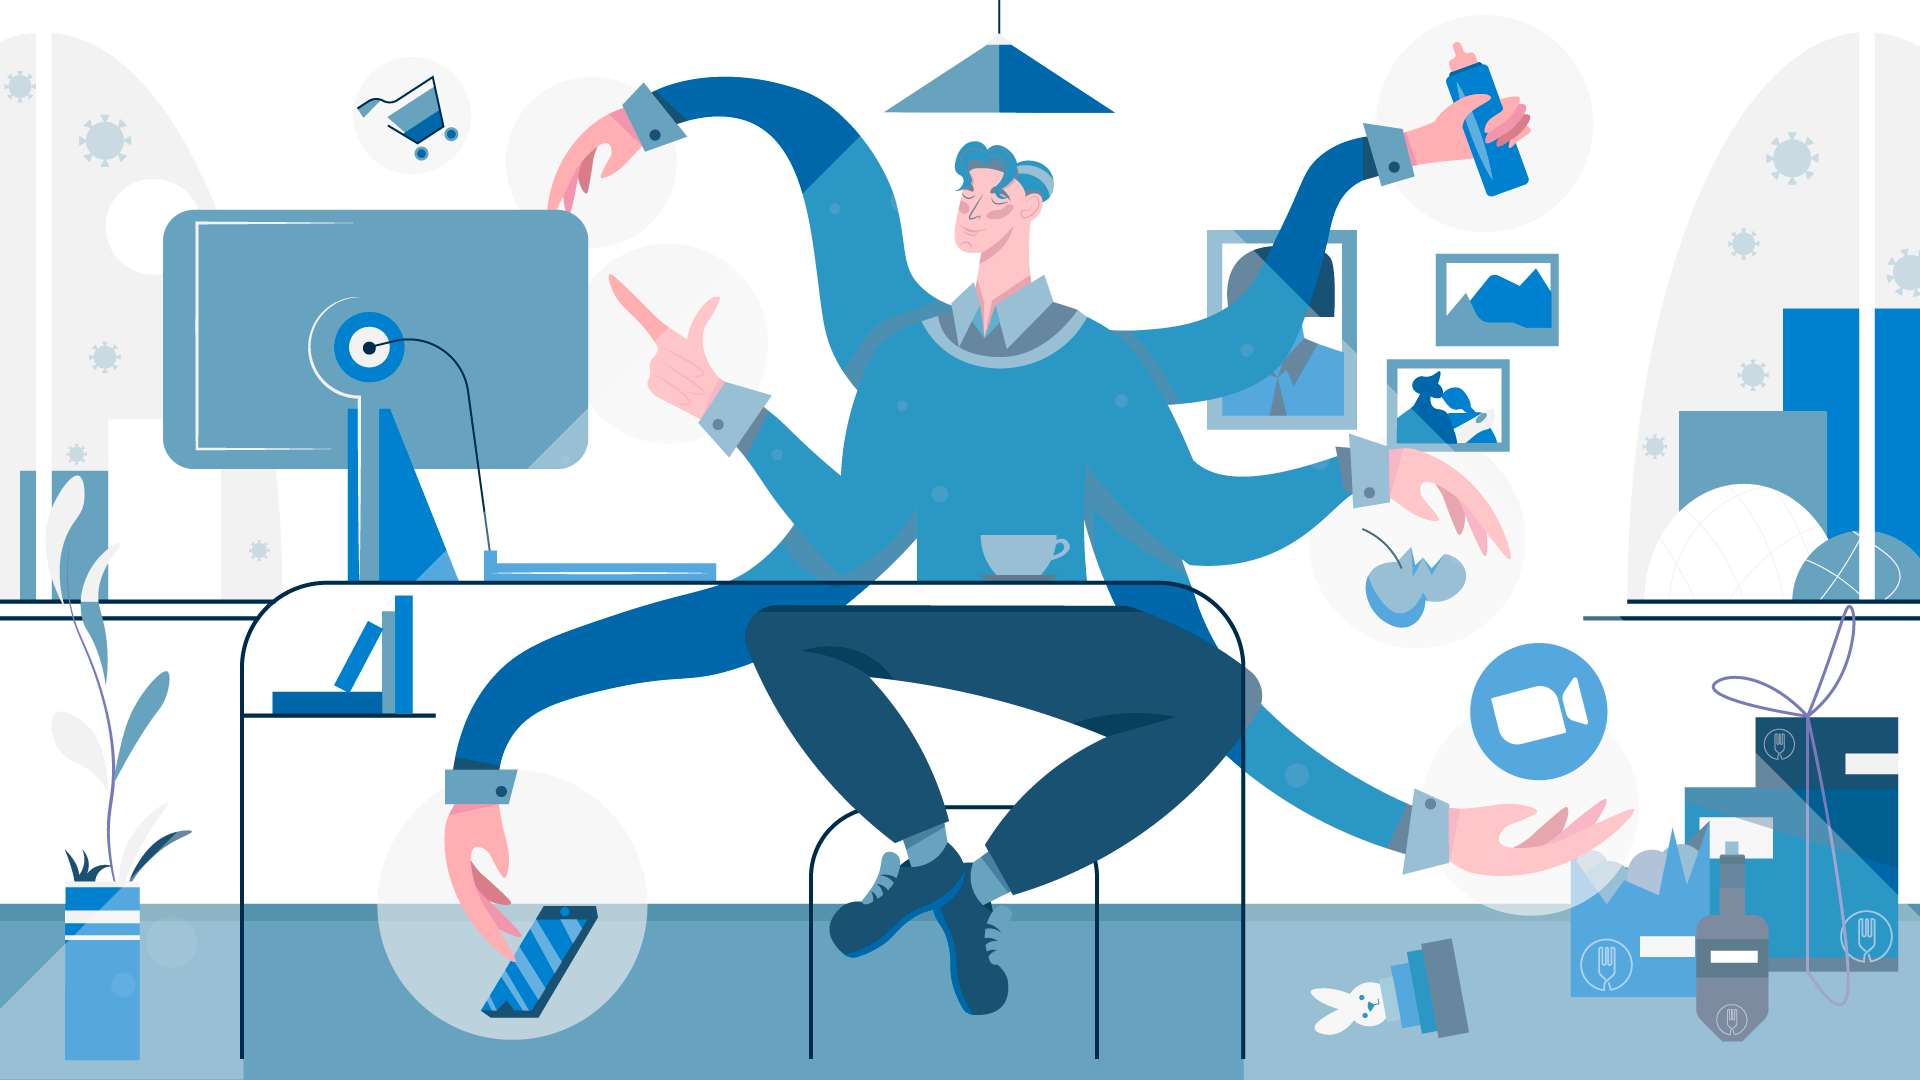 Multi arm work from home employee balancing all of life illustration